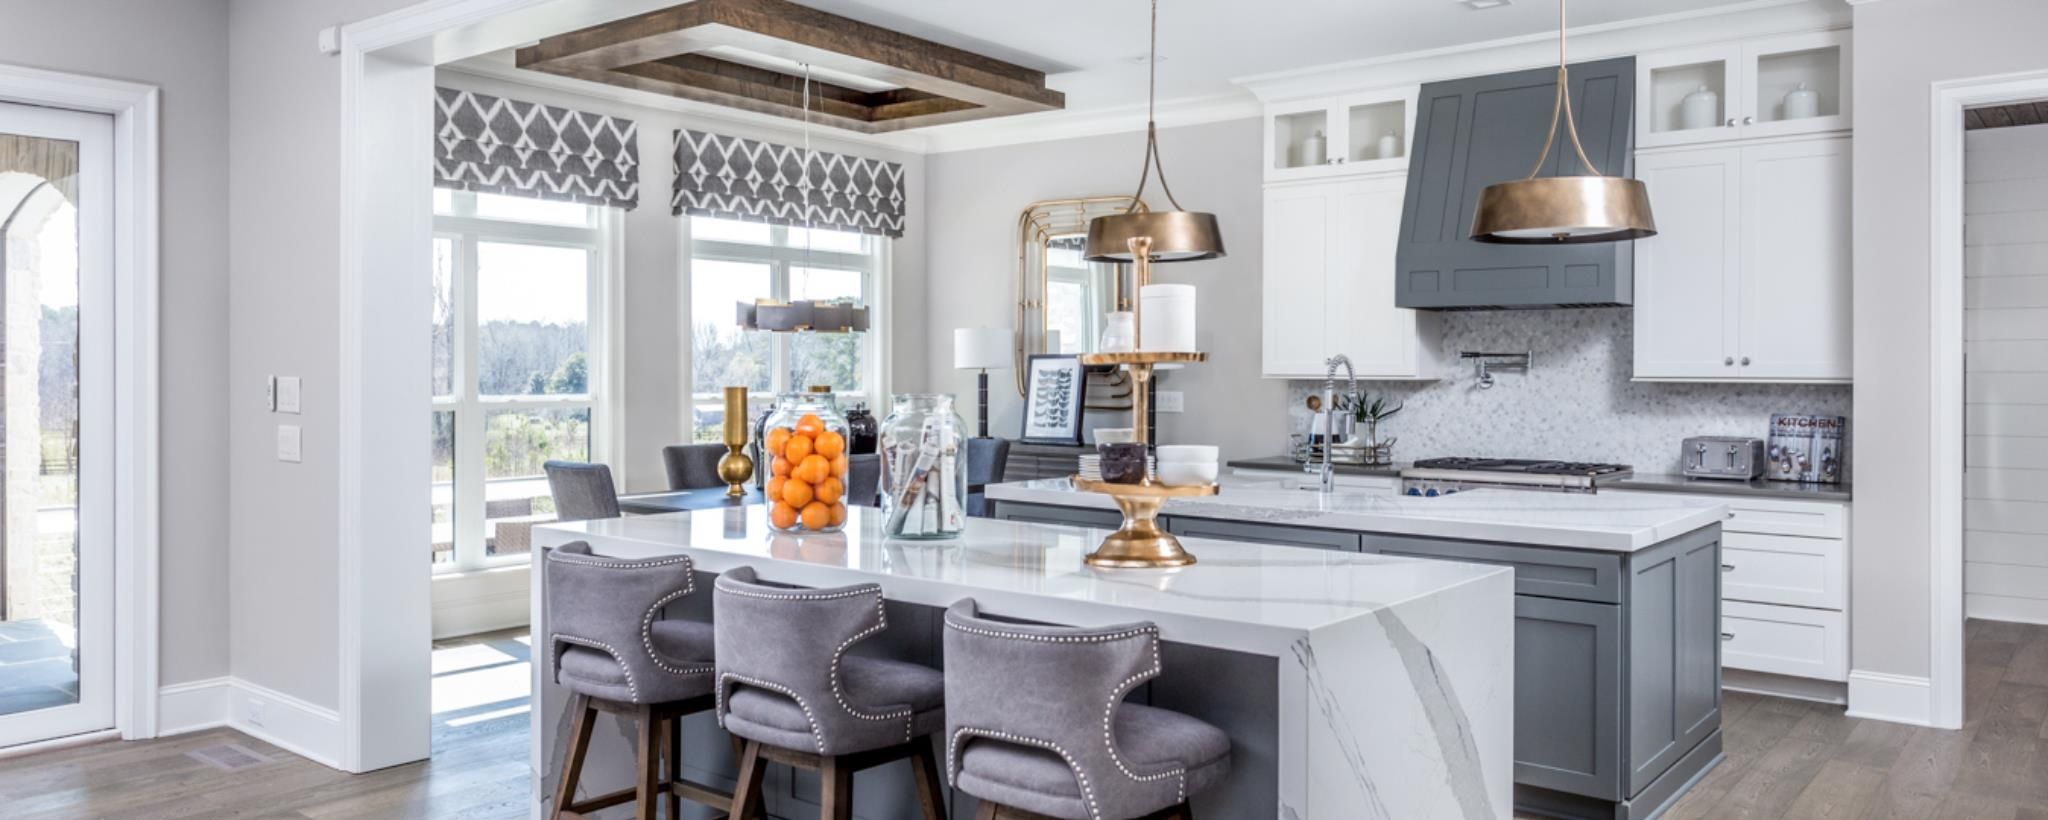 Providence at Yates Pond in Cary, NC | Baker Residential